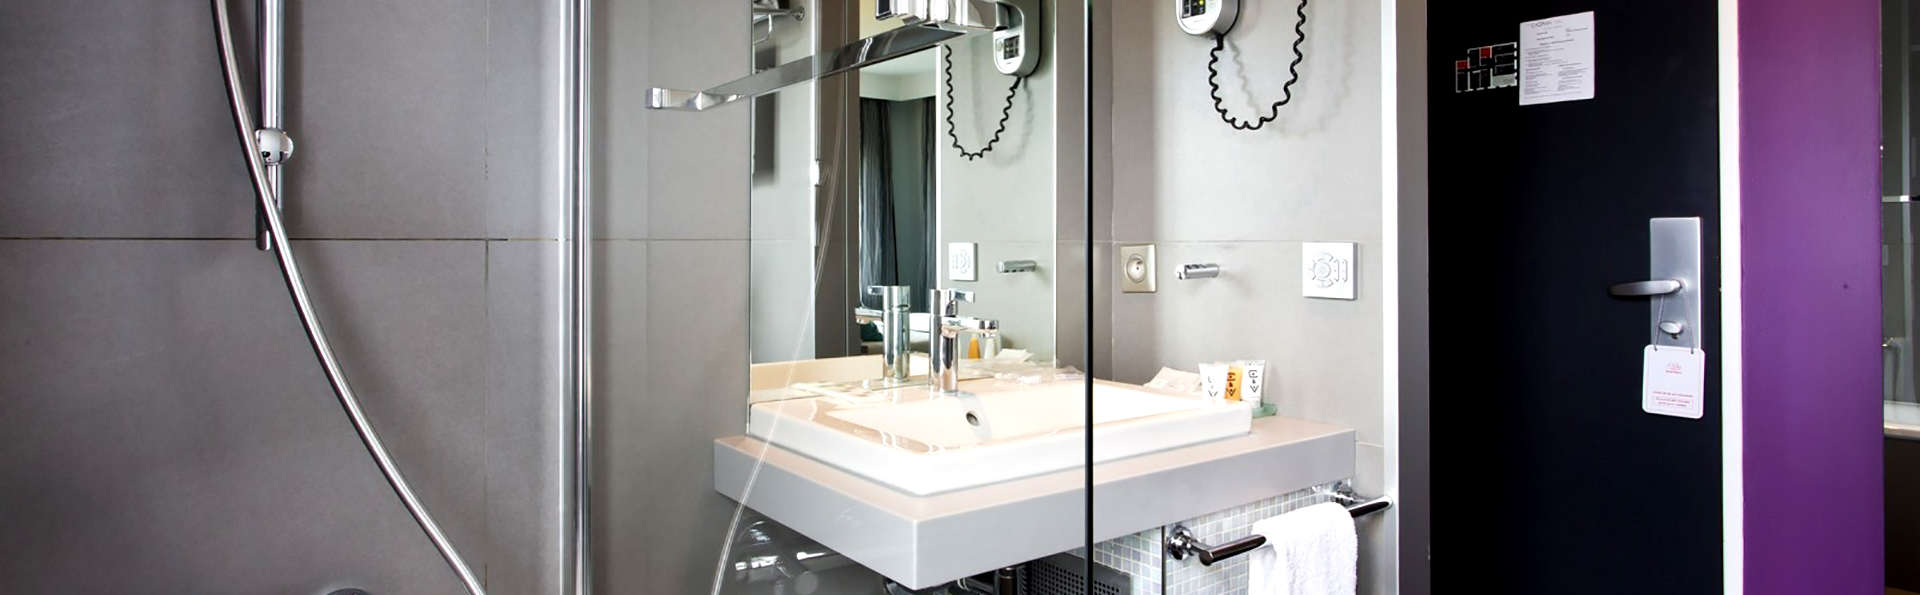 Hôtel du Cadran - Edit_Bathroom.jpg